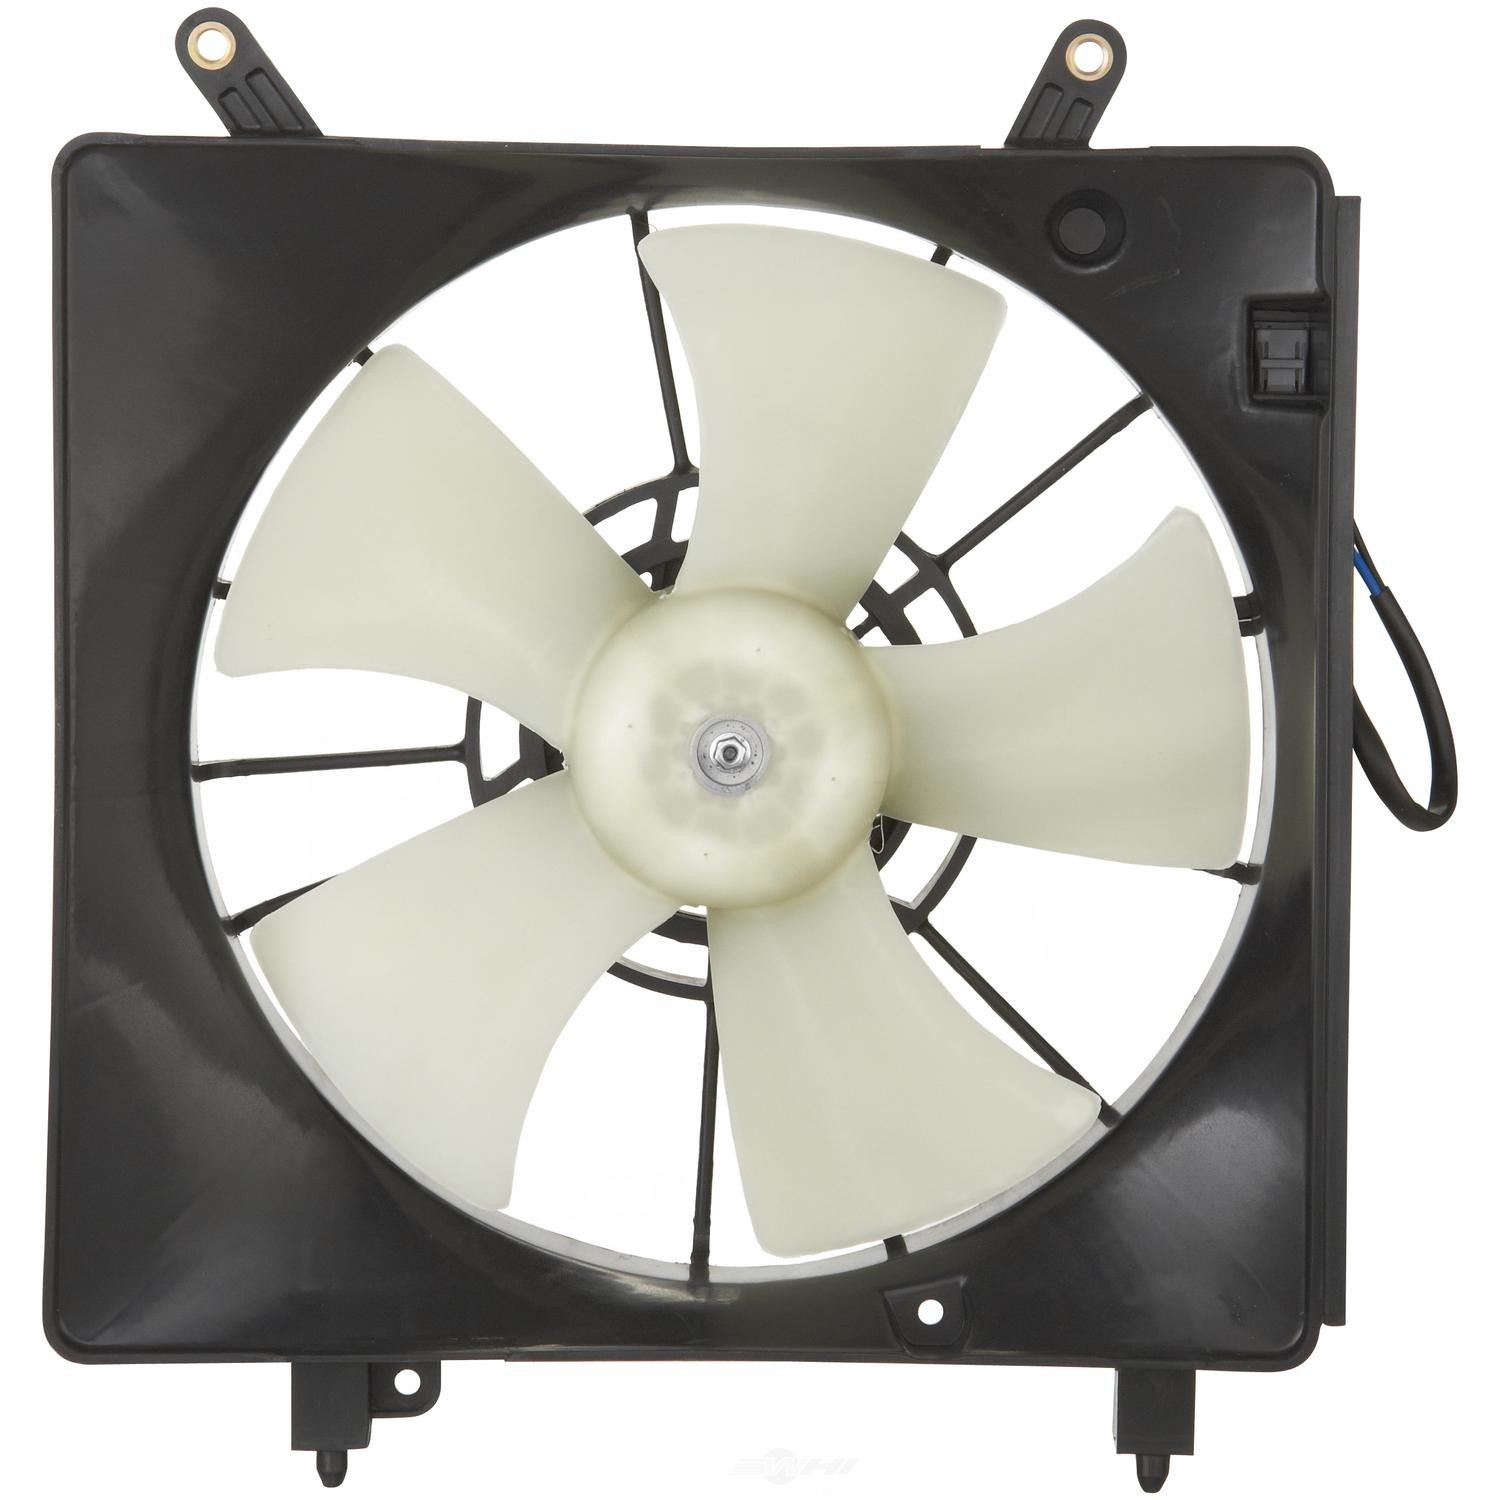 SPECTRA PREMIUM IND., INC. - Engine Cooling Fan Assembly - SPC CF18049